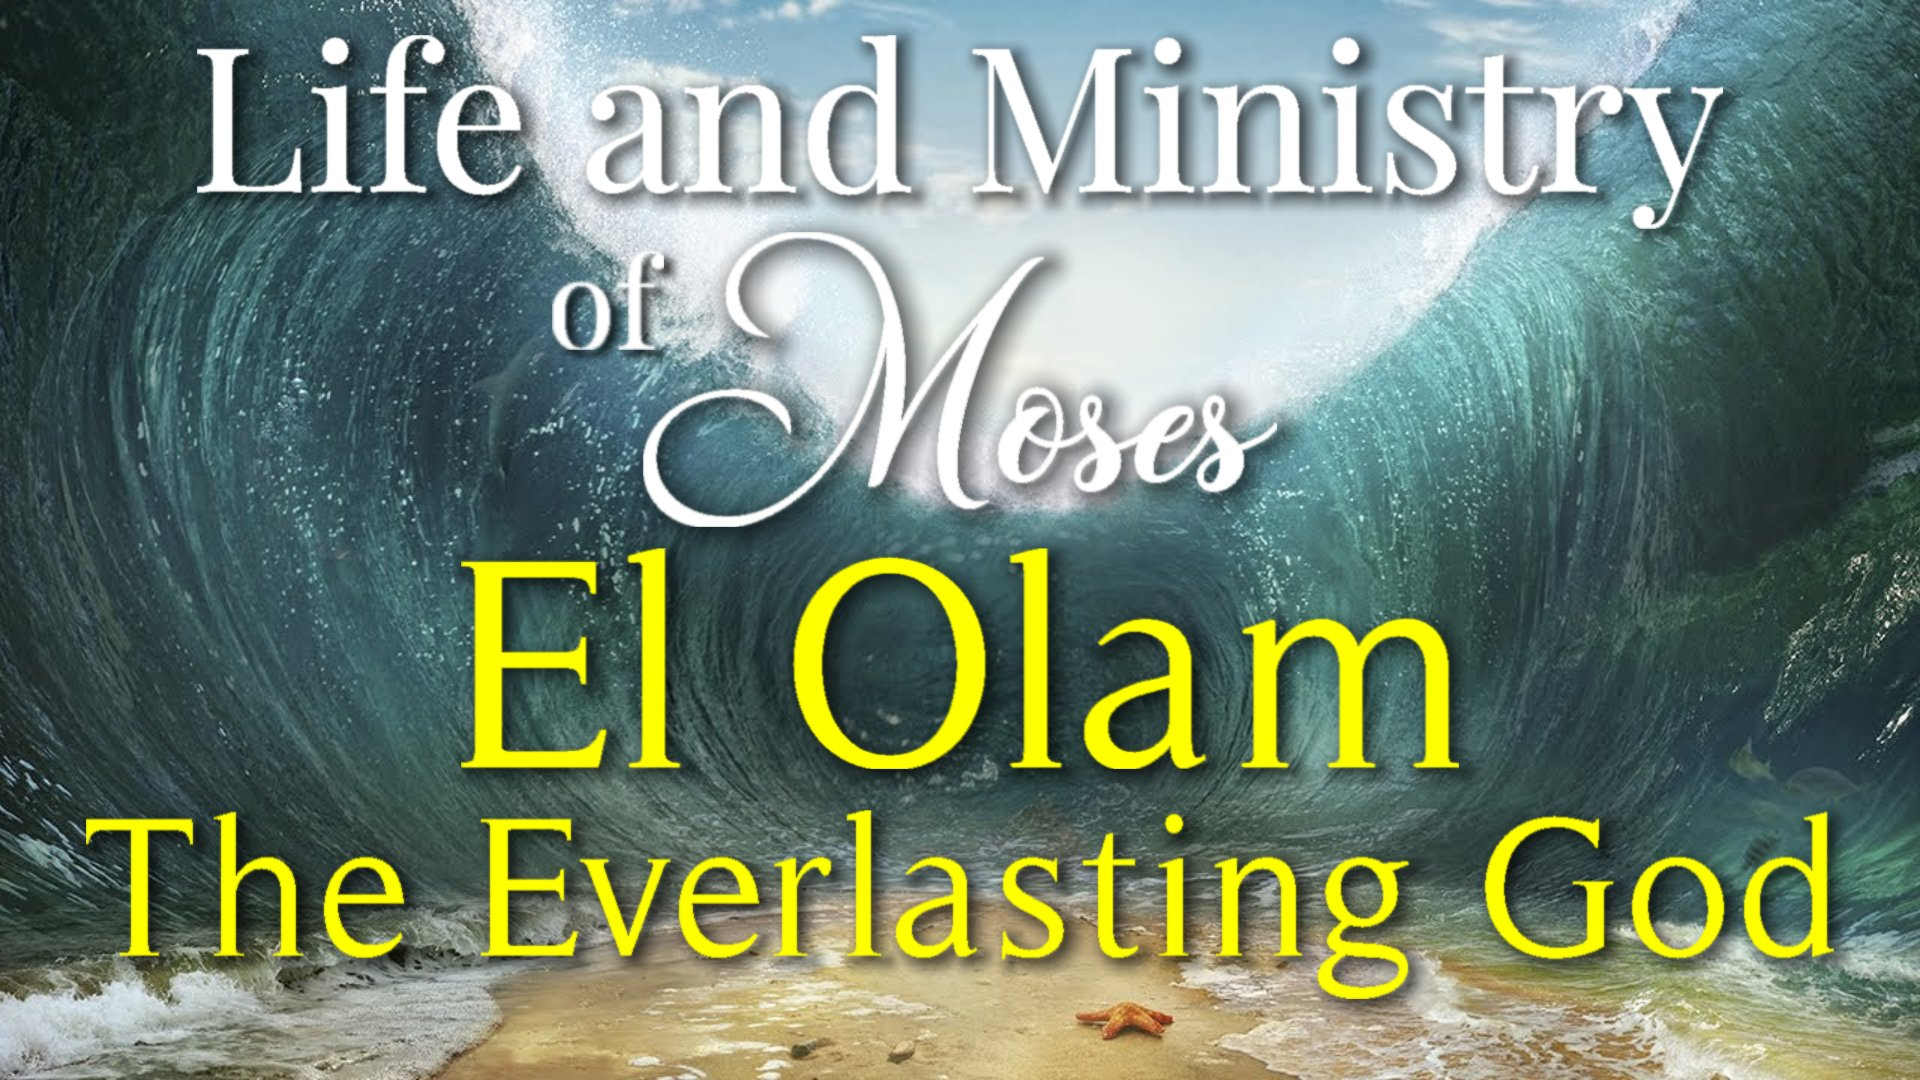 41 El Olam, The Everlasting God